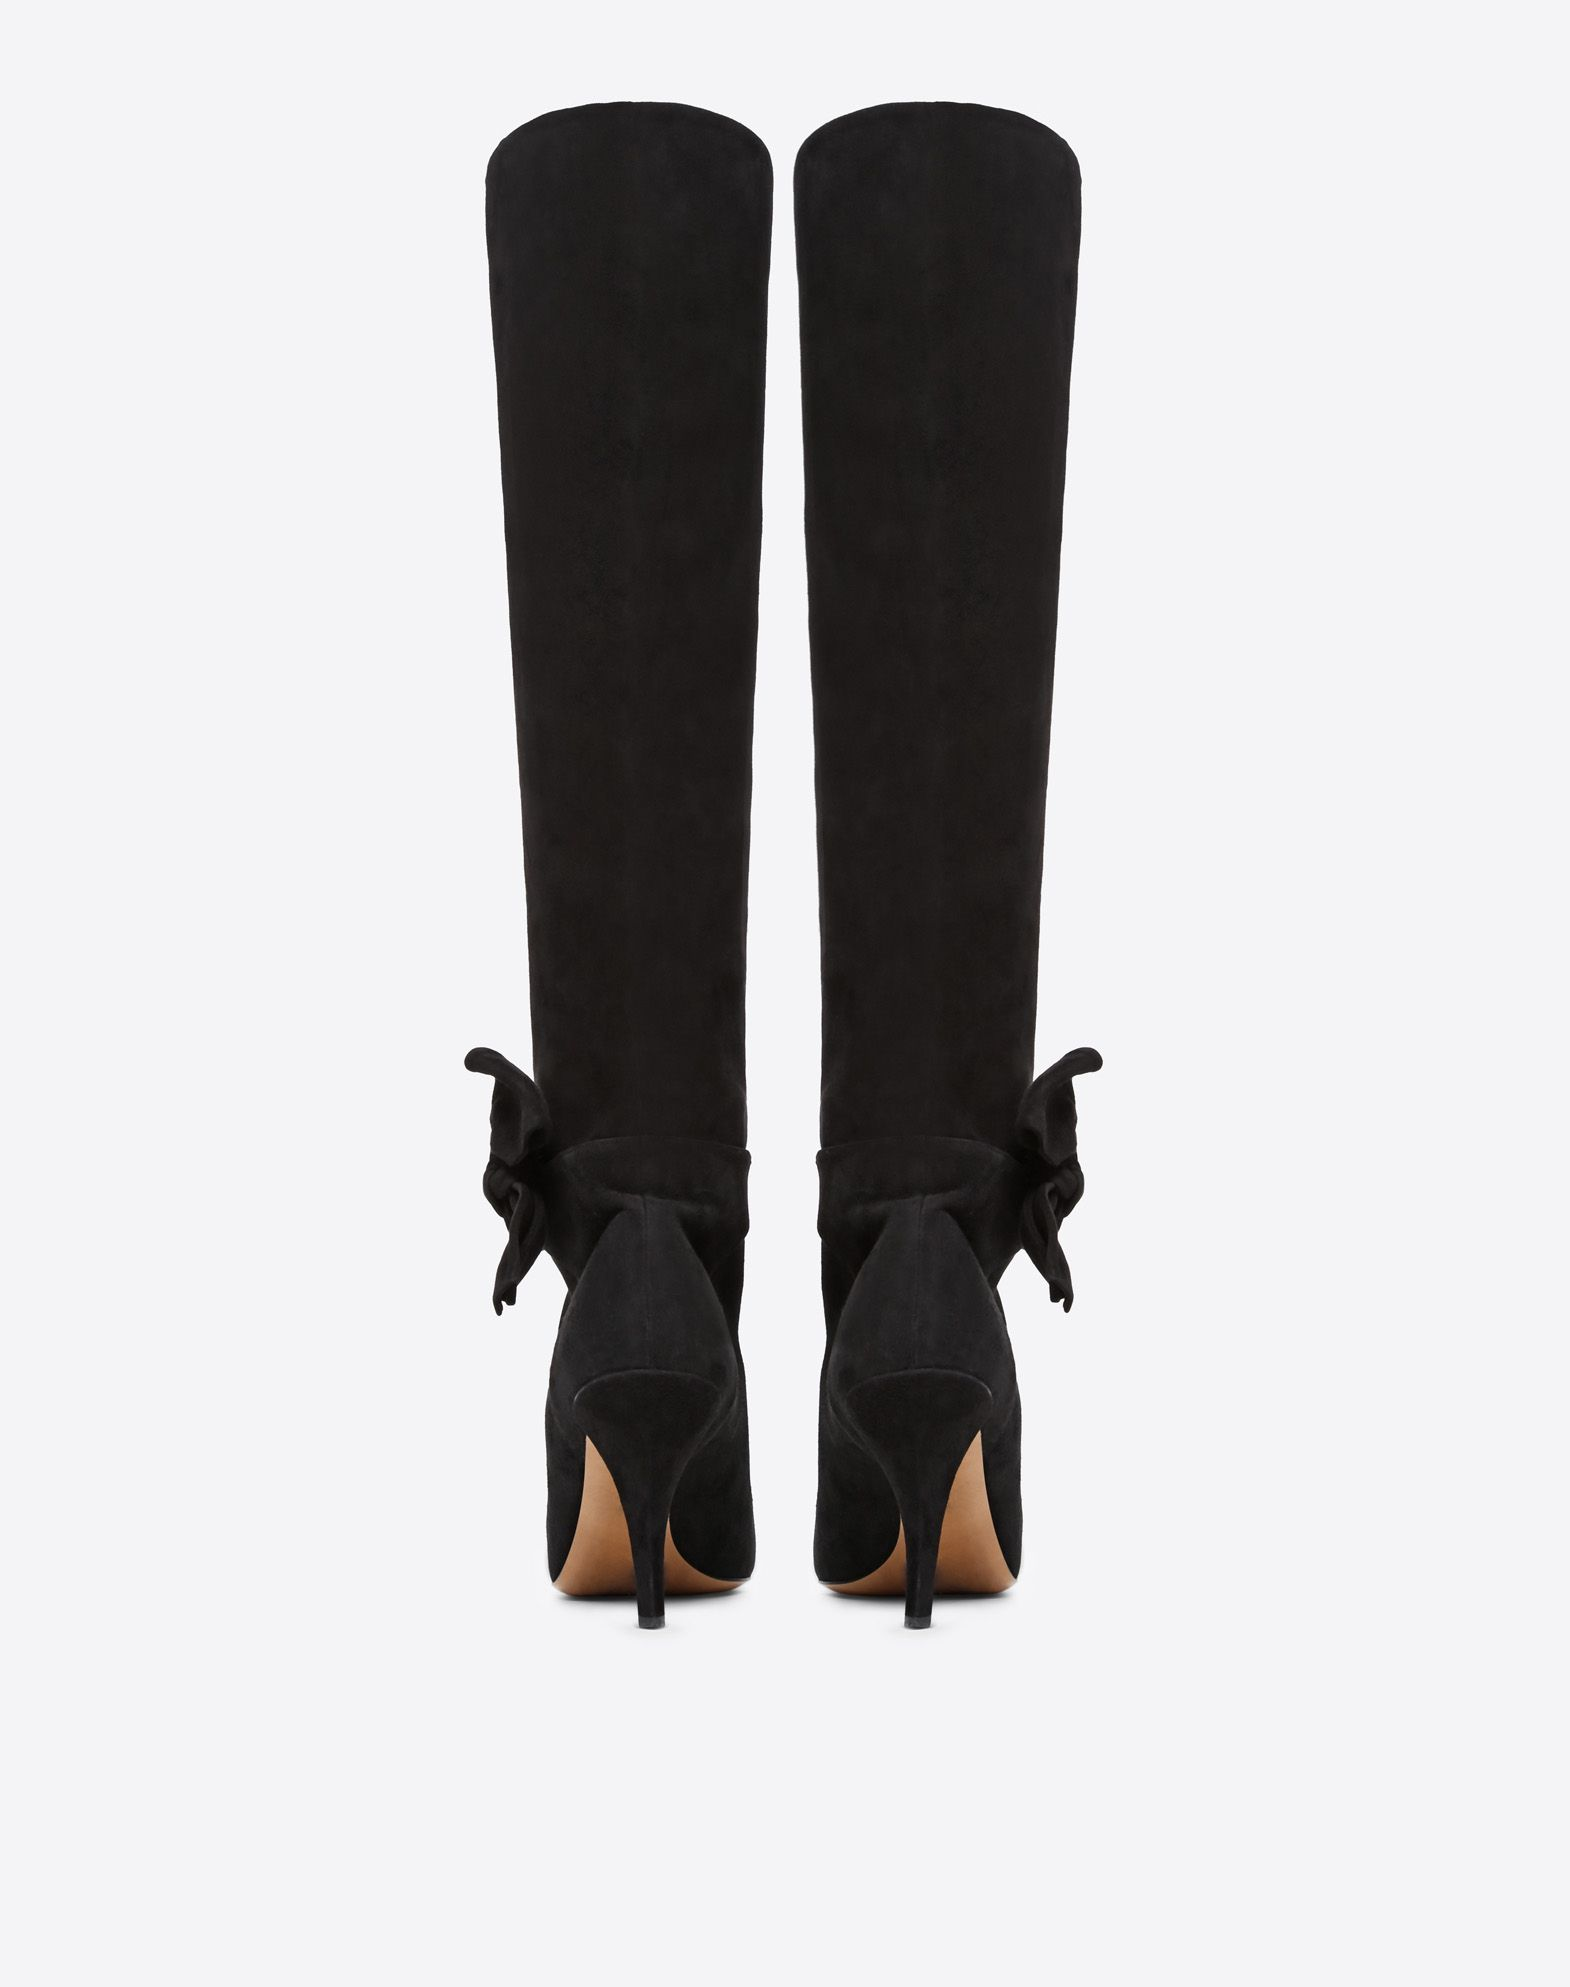 VALENTINO GARAVANI Knee-High Bow Boot in Suede Boot D d